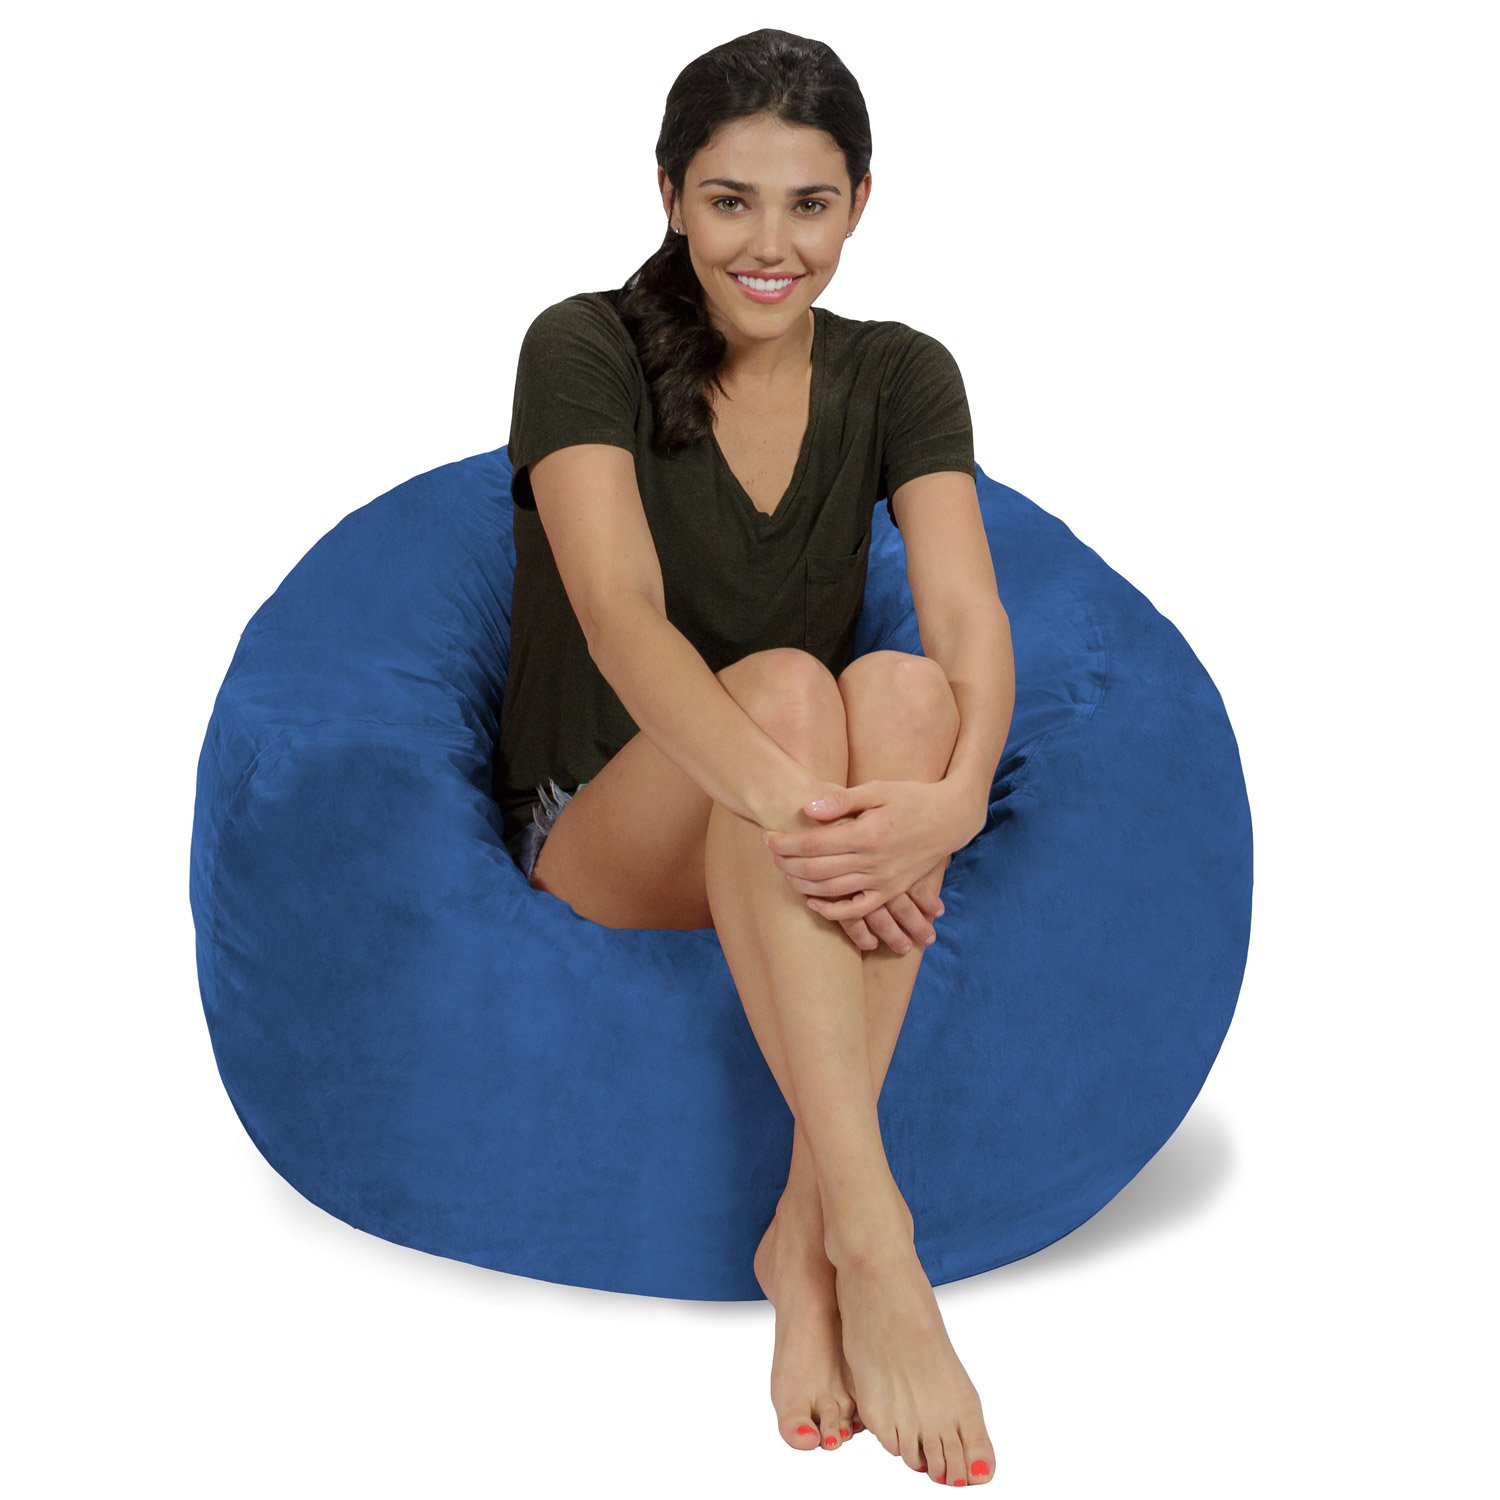 Chill Sack Bean Bag Chair: Large 3' Memory Foam Furniture Bean Bag - Big Sofa with Soft Micro Fiber Cover - Royal Blue Micro Suede by Chill Sack